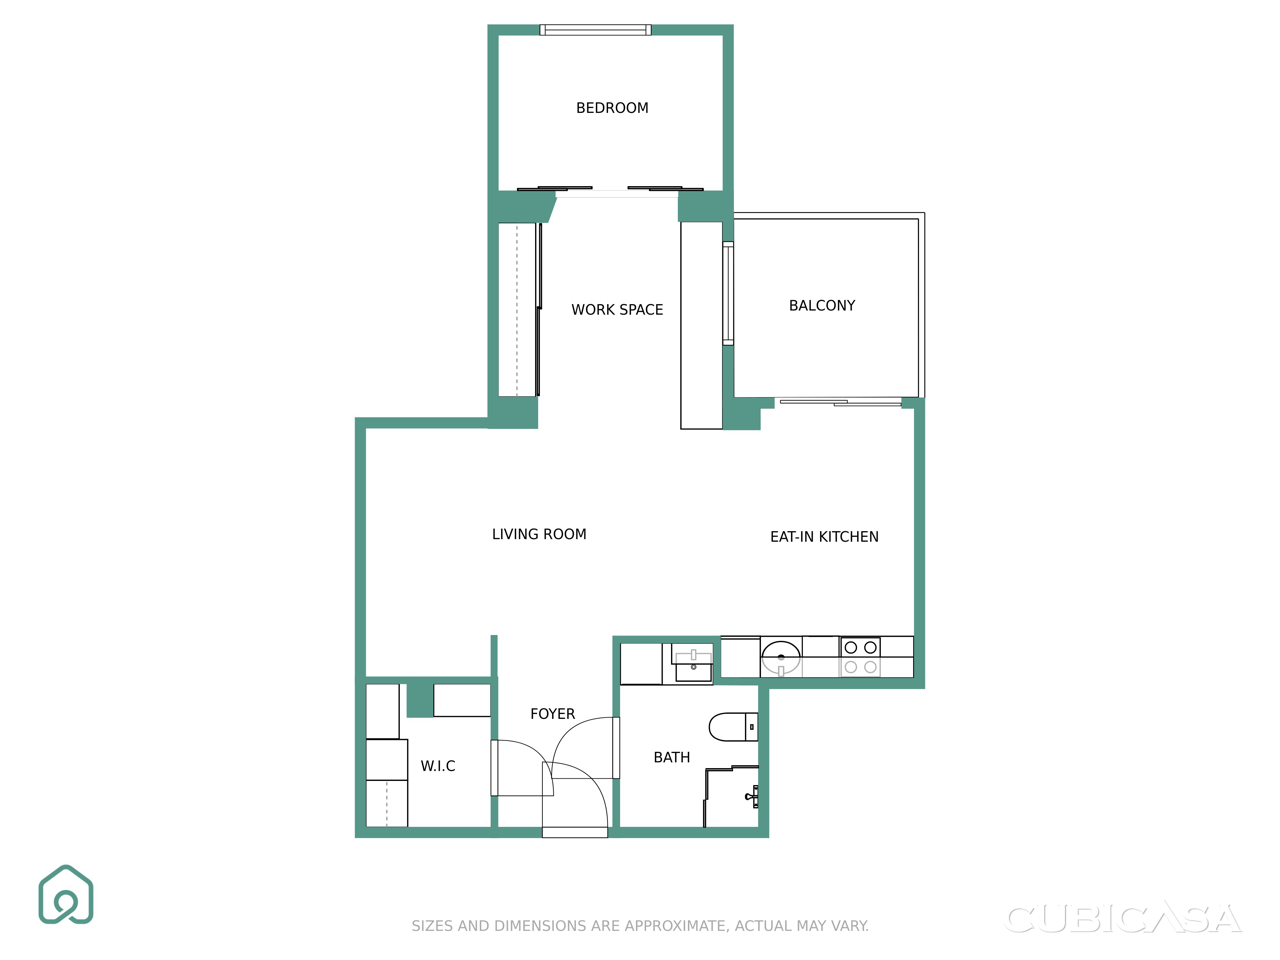 Roomsketcher Balcony Why Real Estate Agents Should Use Floor Plans In Listings